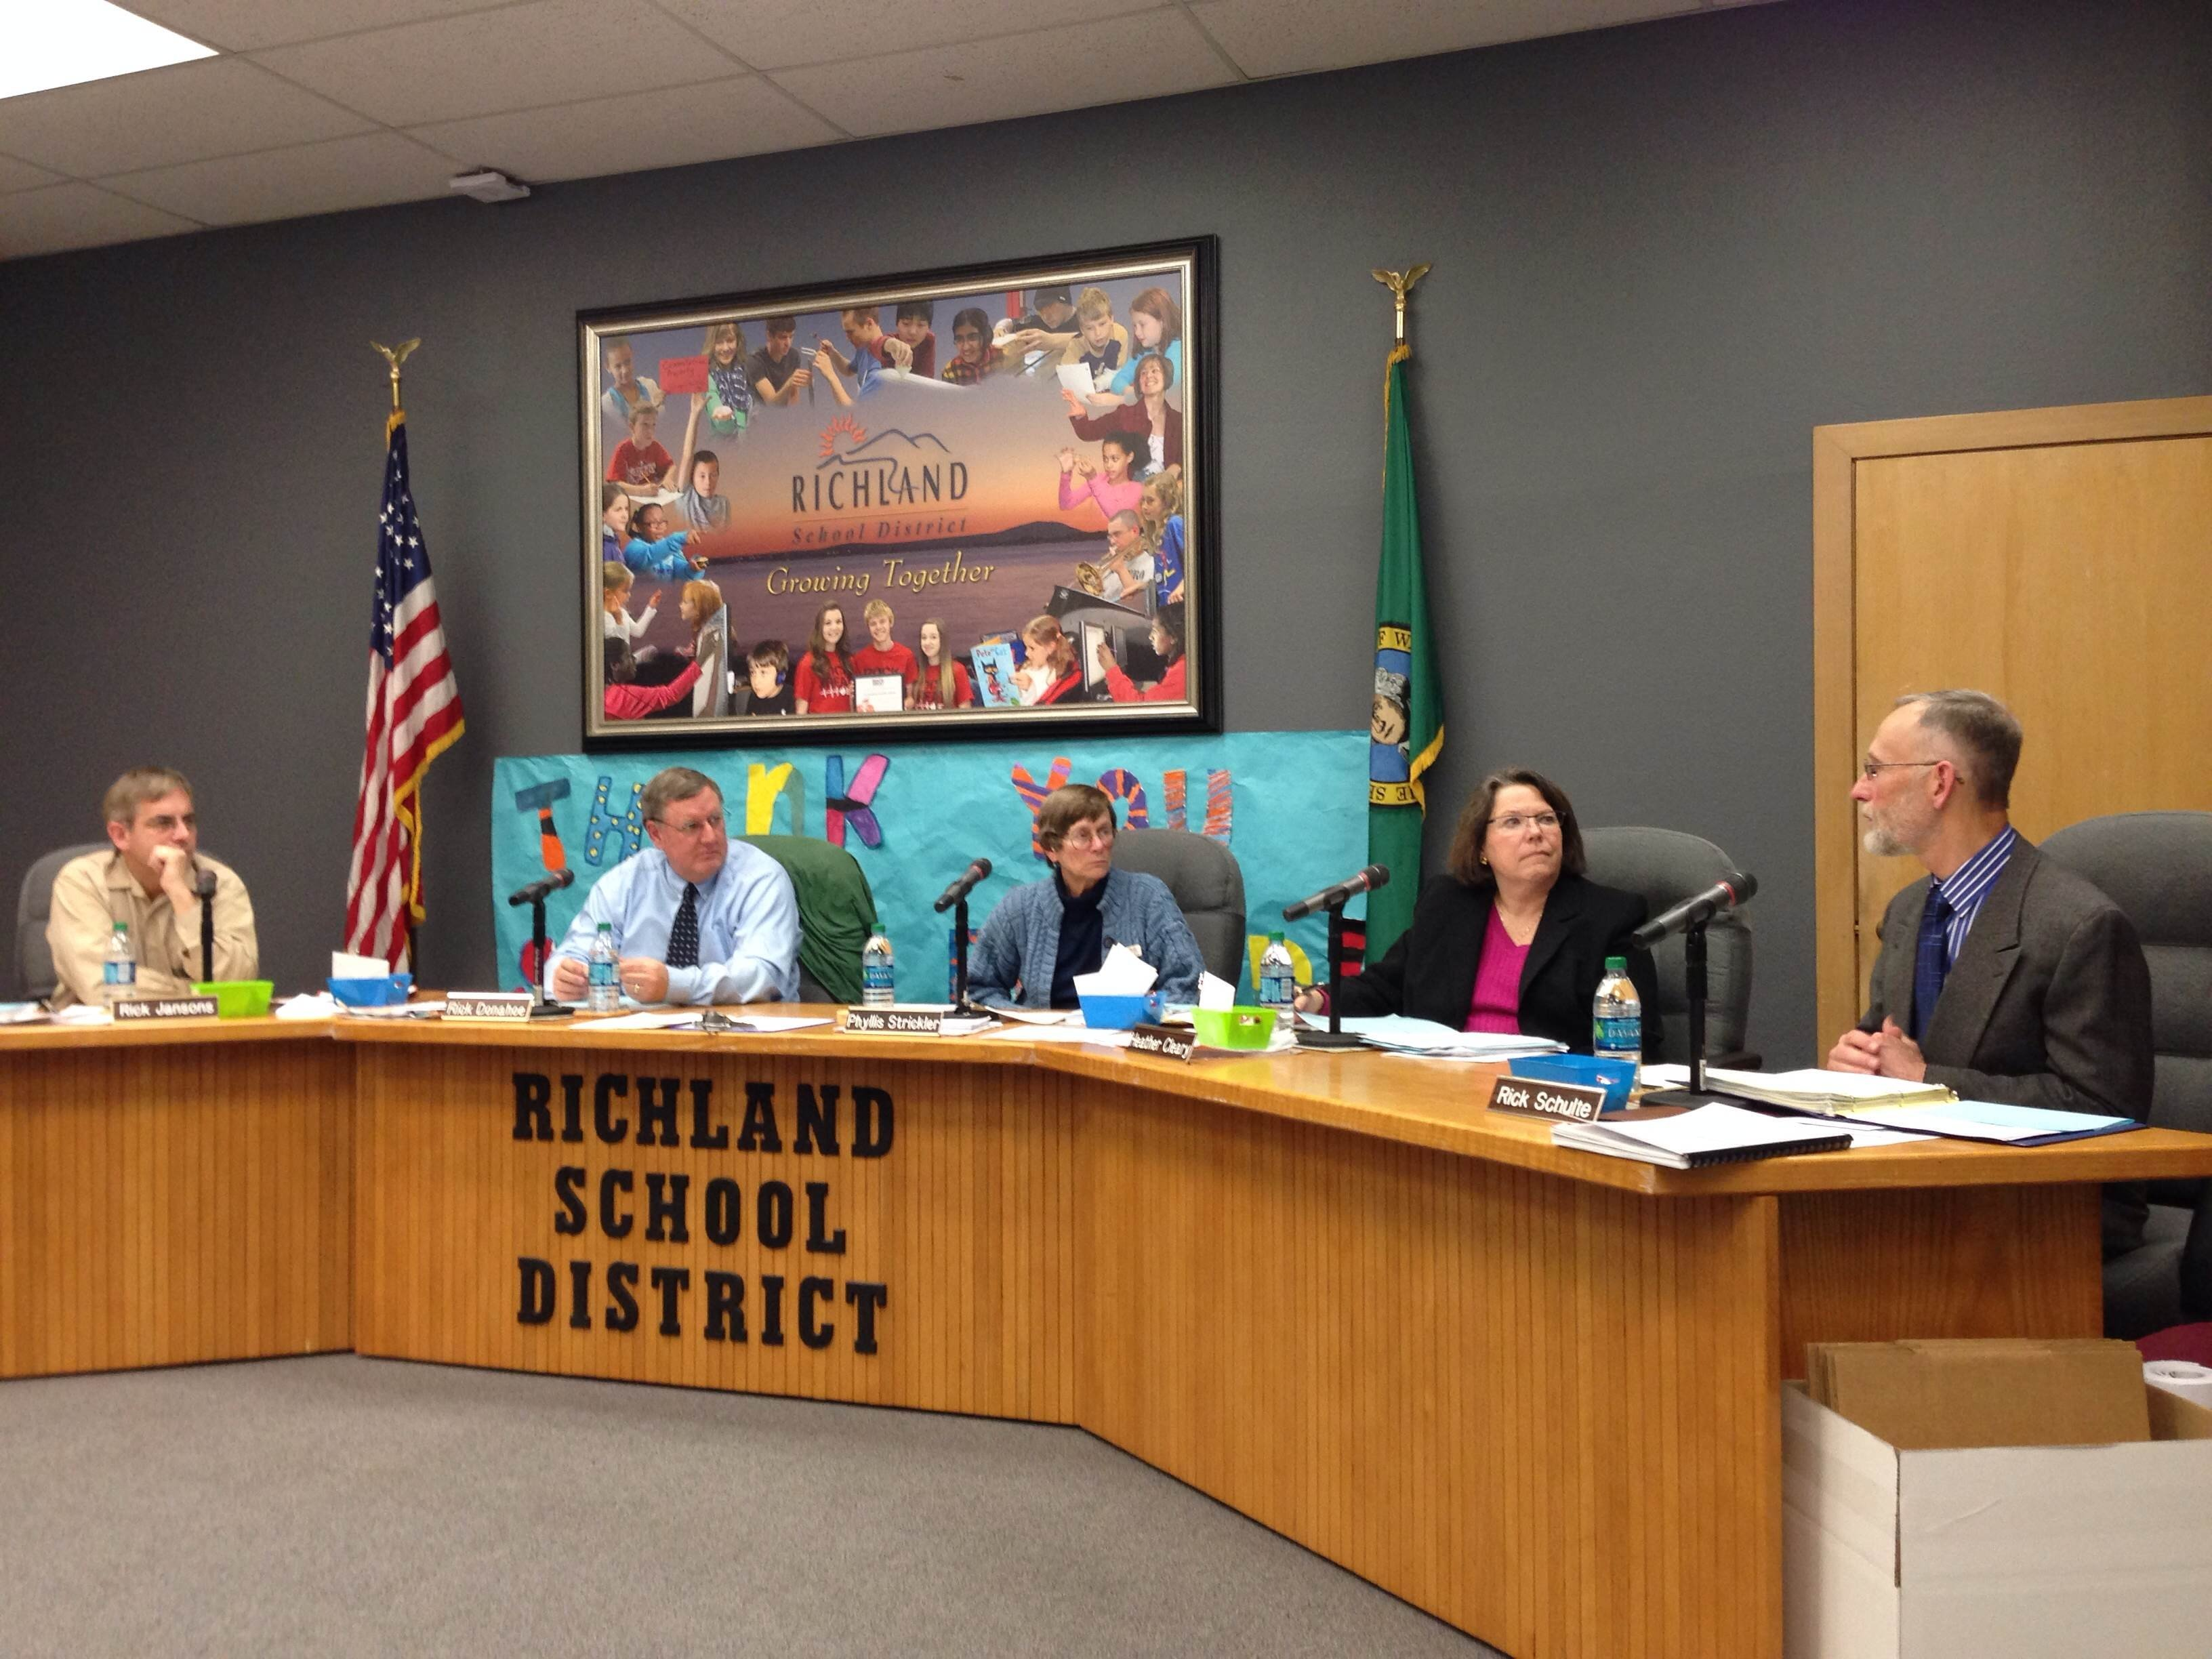 The Richland School Board met Tuesday night to discuss a hot button issue, what to do about the letters removed from two school play fields.